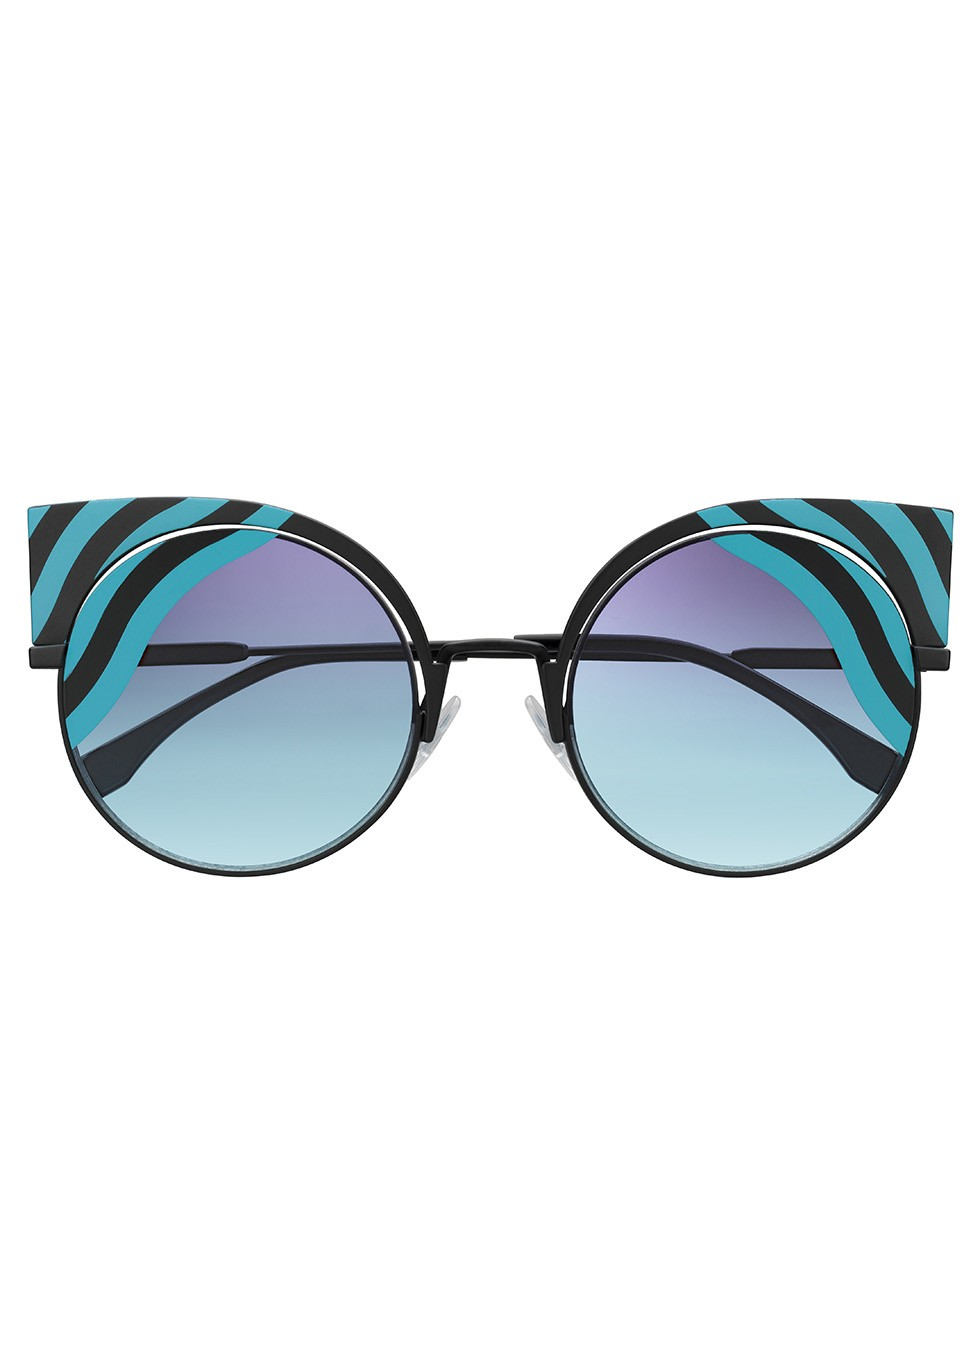 Fendi Hypnoshine striped cat-eye sunglasses, £410